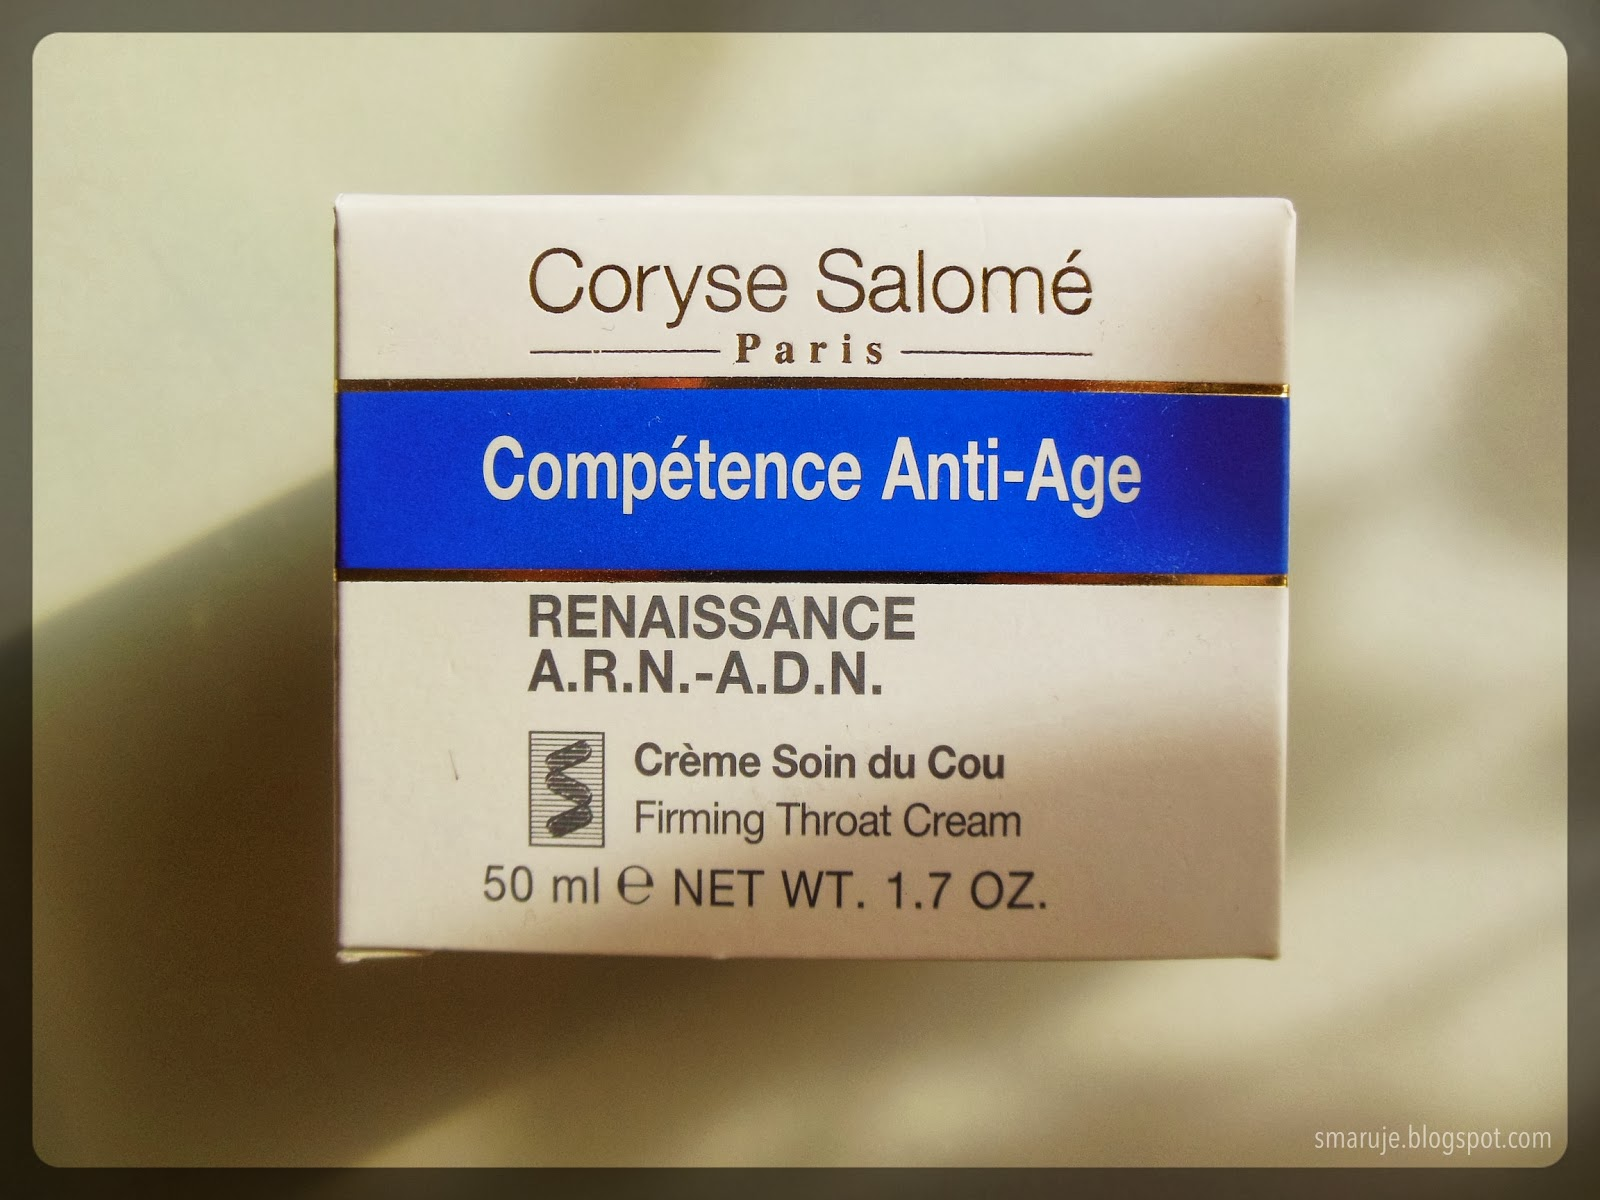 Coryse Salomé – Compétence Anti-Age Firming Throat Cream, czyli krem do szyi, moi mili.